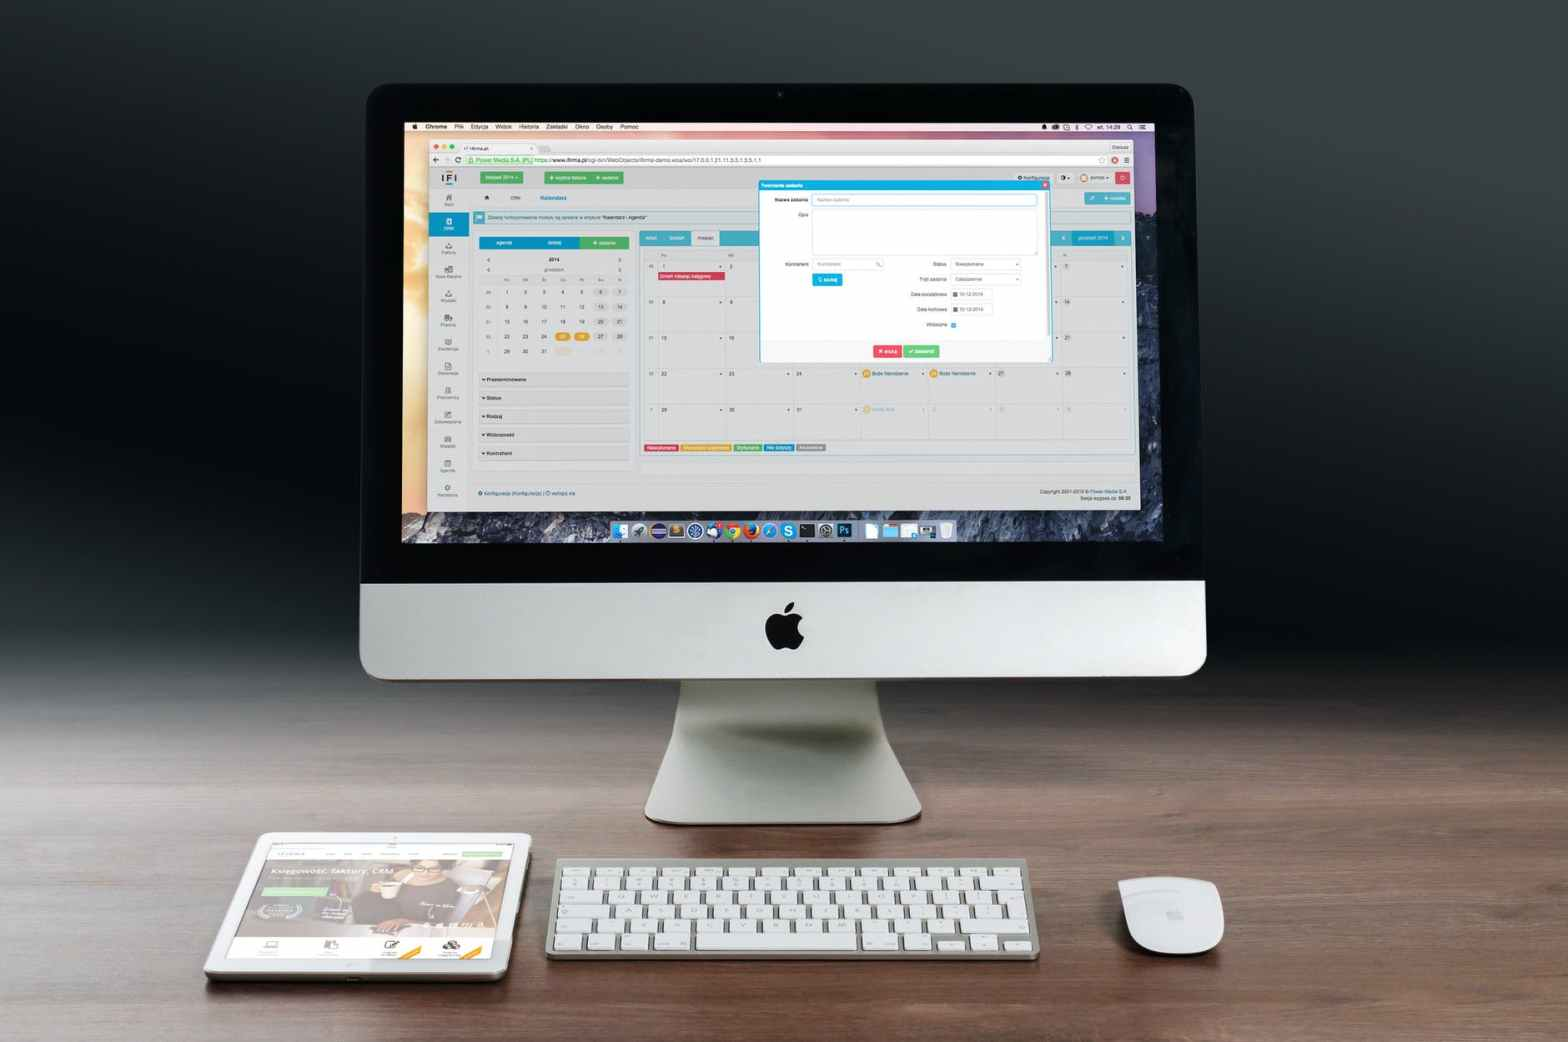 silver imac apple magic keyboard and magic mouse on wooden table